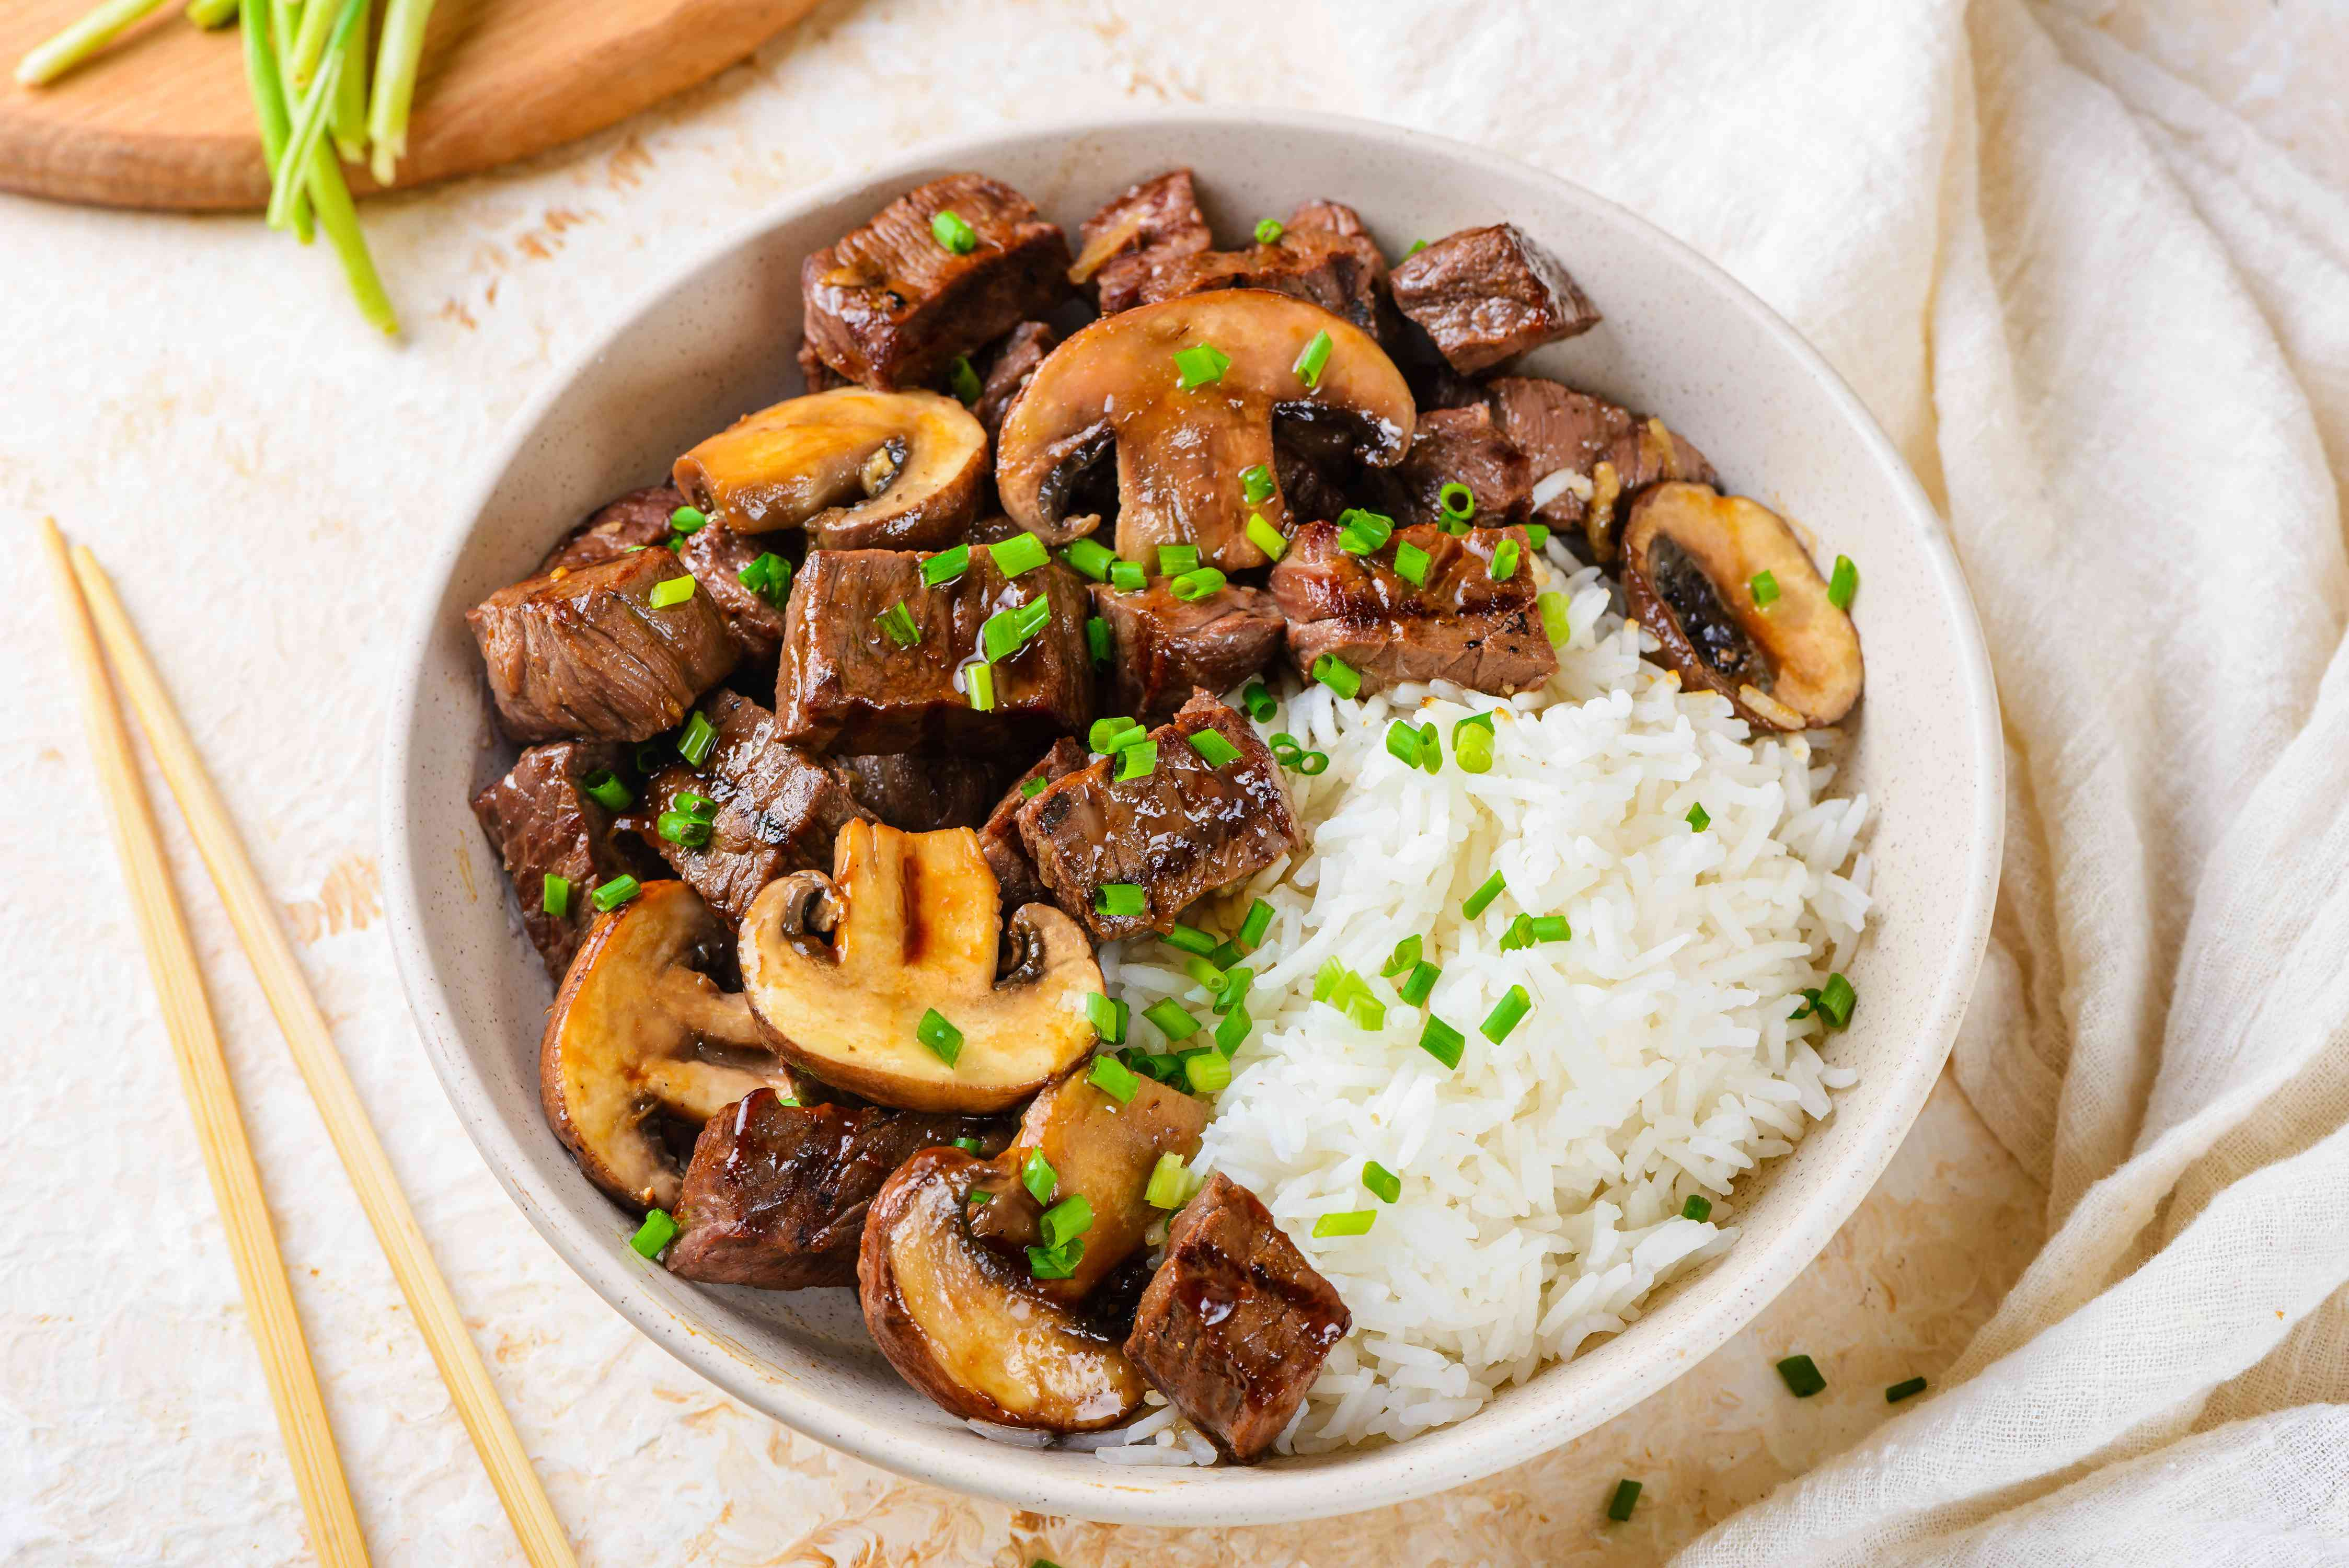 Hibachi-style steak in a bowl with rice